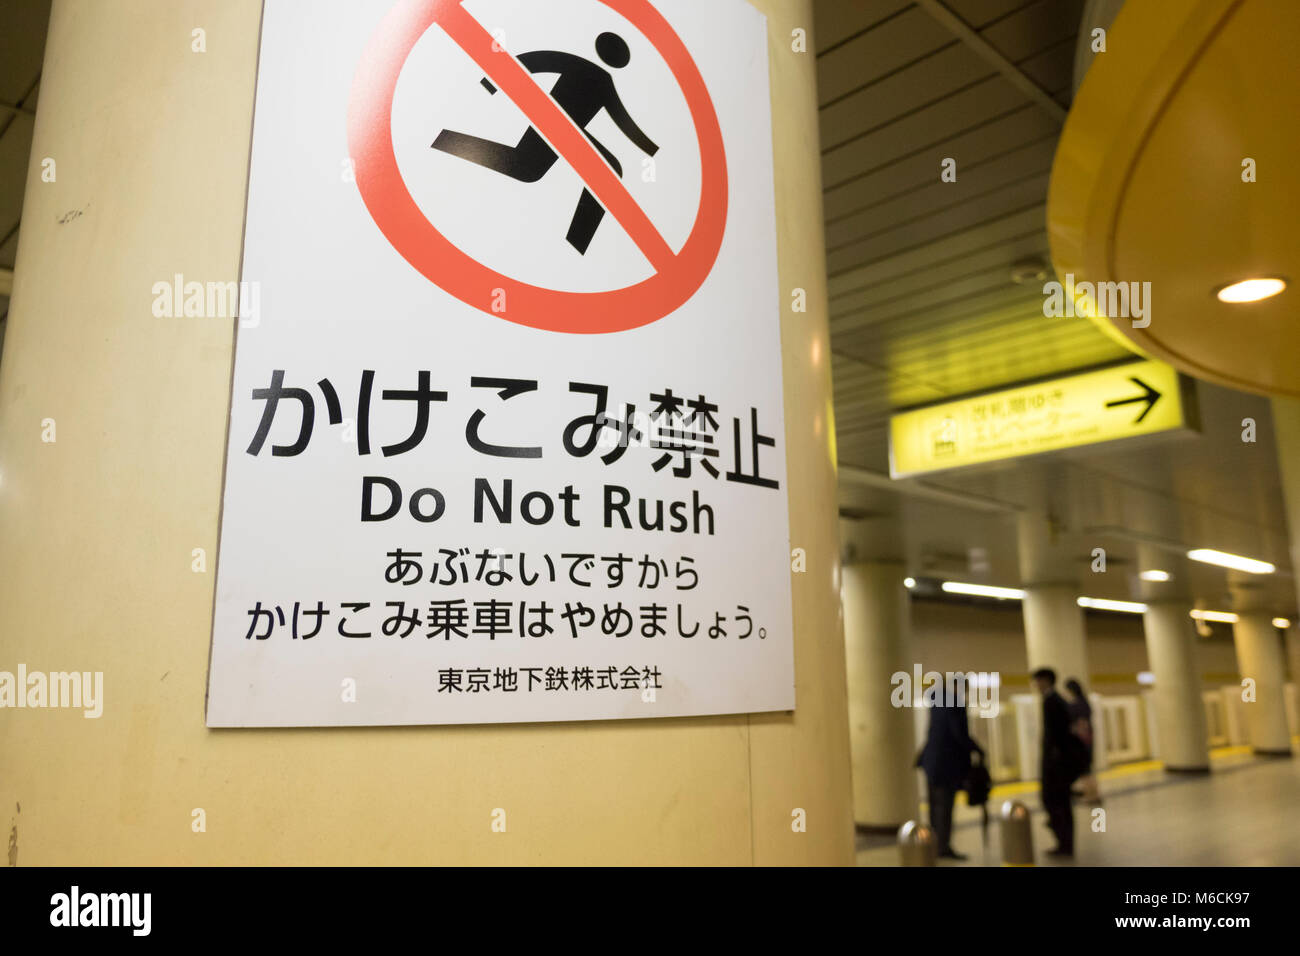 Sign on the Tokyo Metro, Tokyo, Japan - do not rush - Stock Image